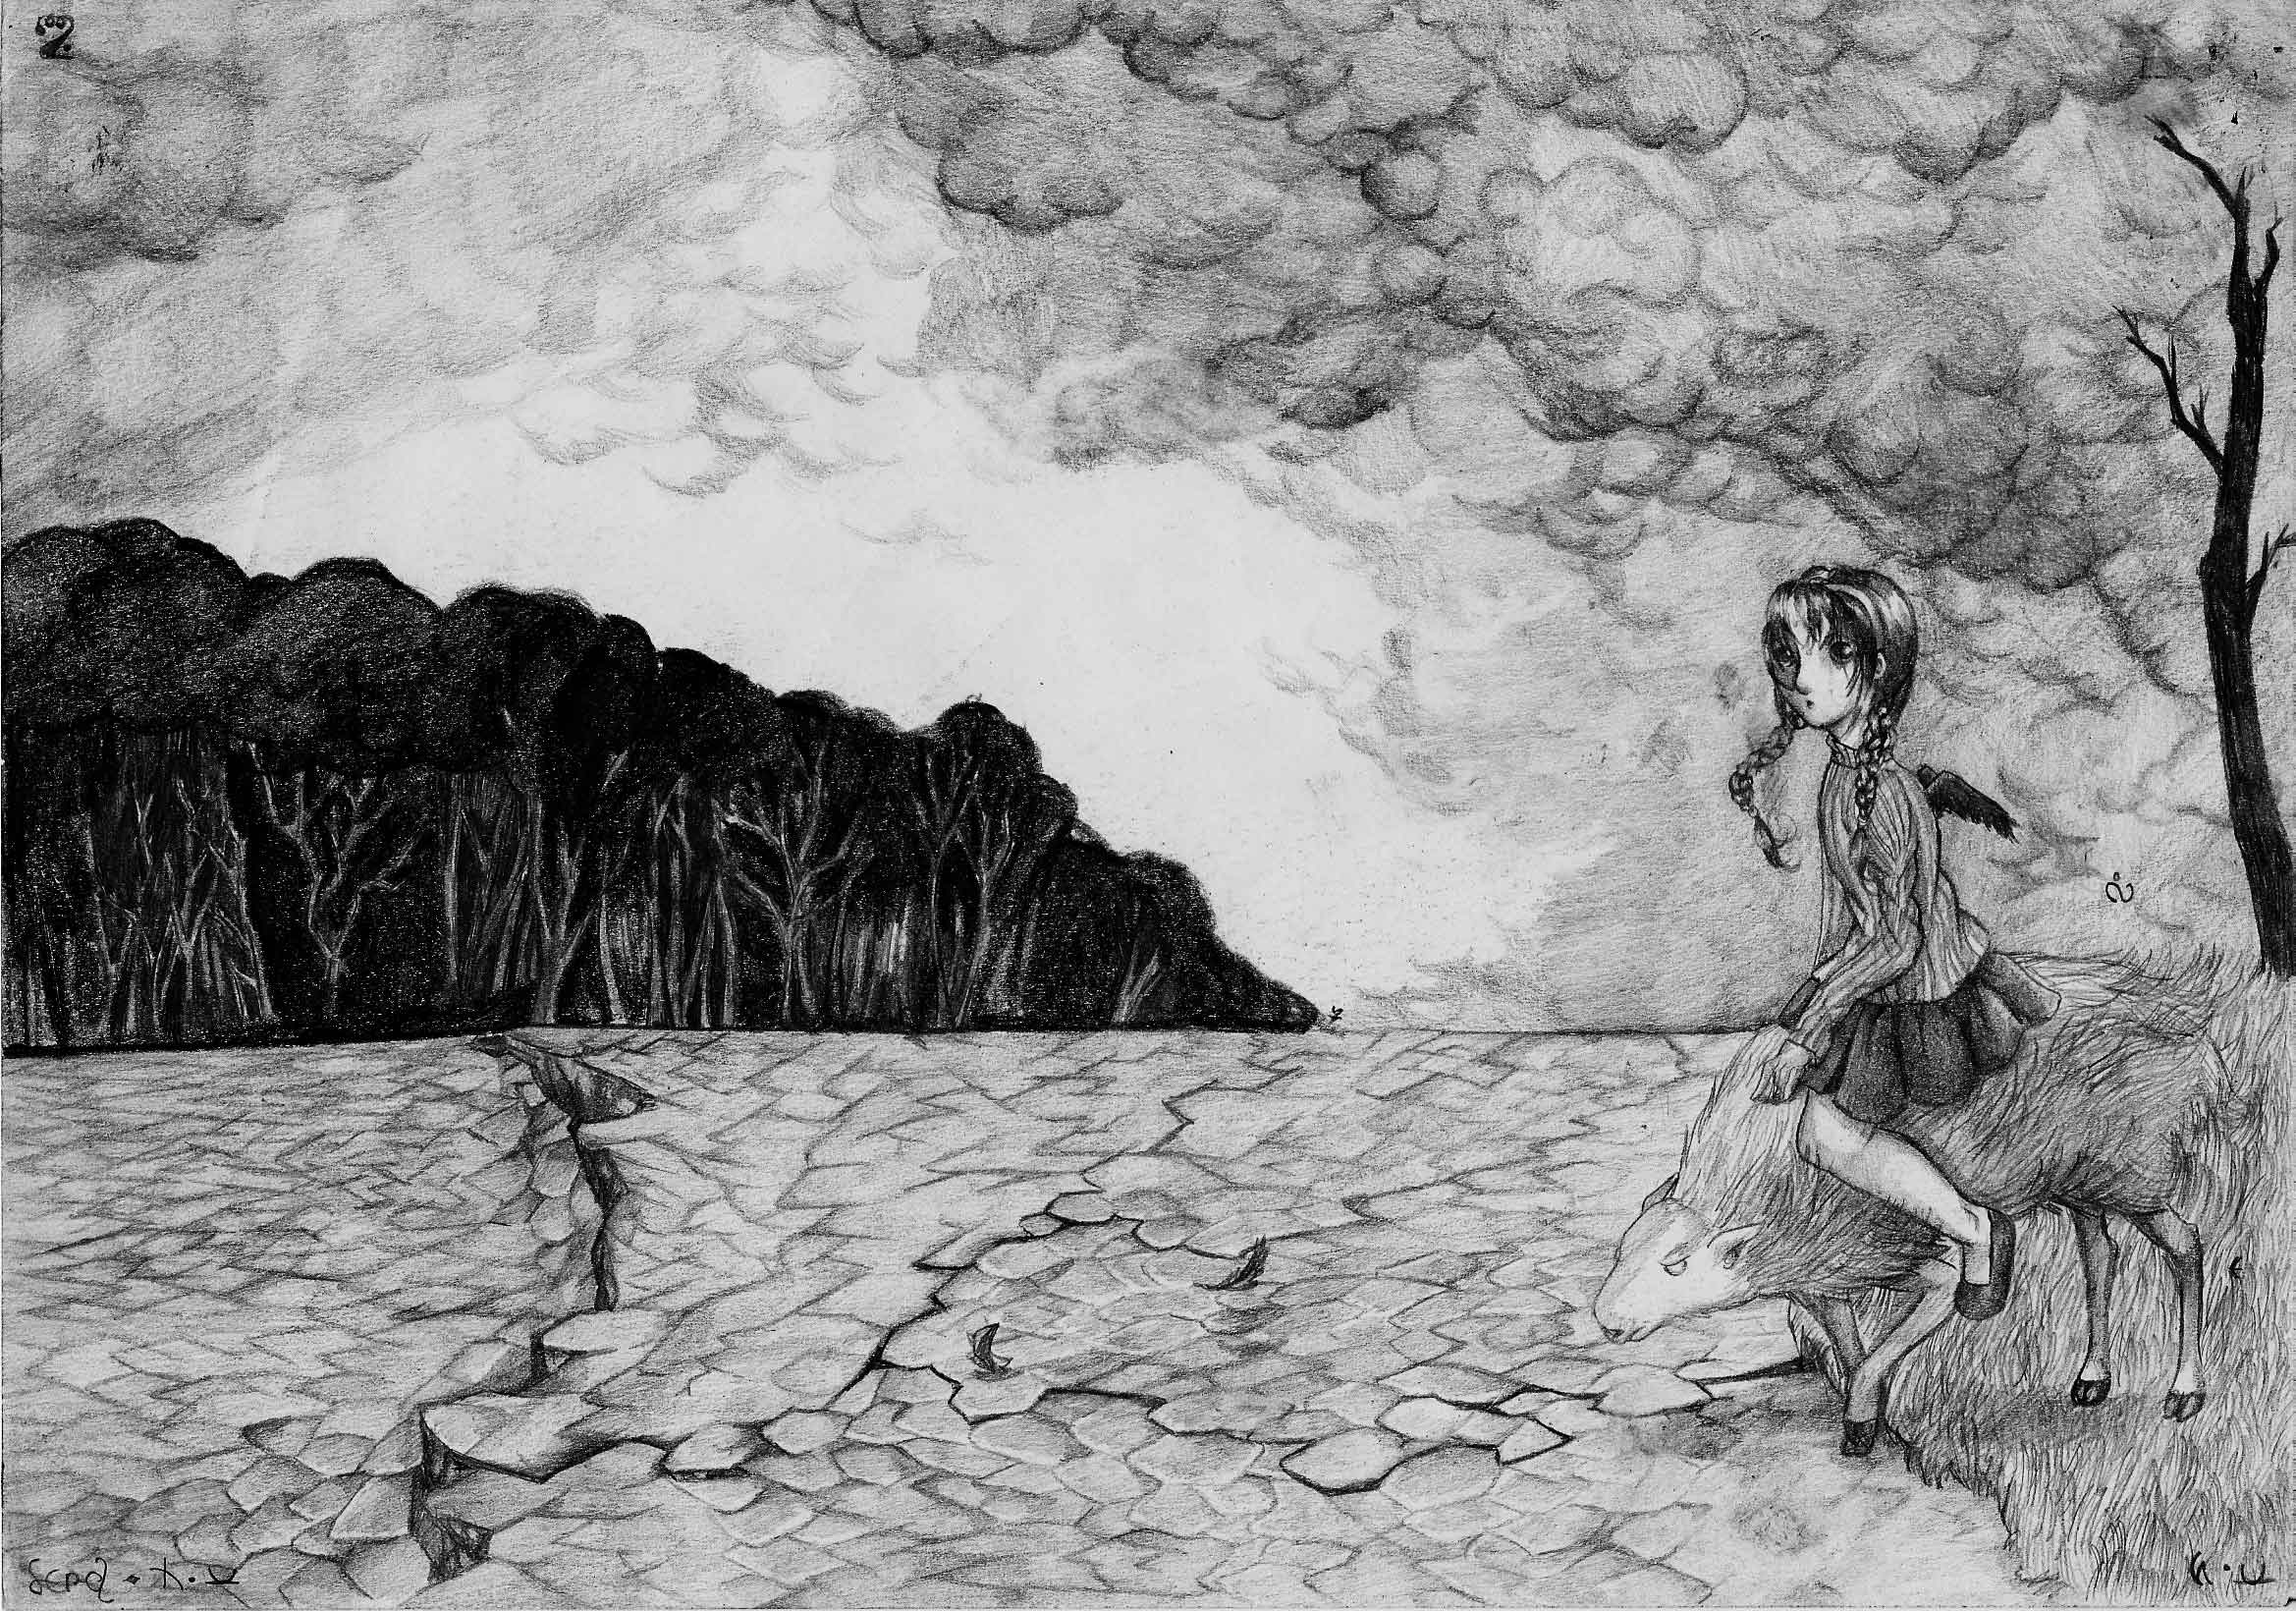 Surreal drawing of a young girl mounted on a sheep is about to cross a very dry land with a forest in sight.